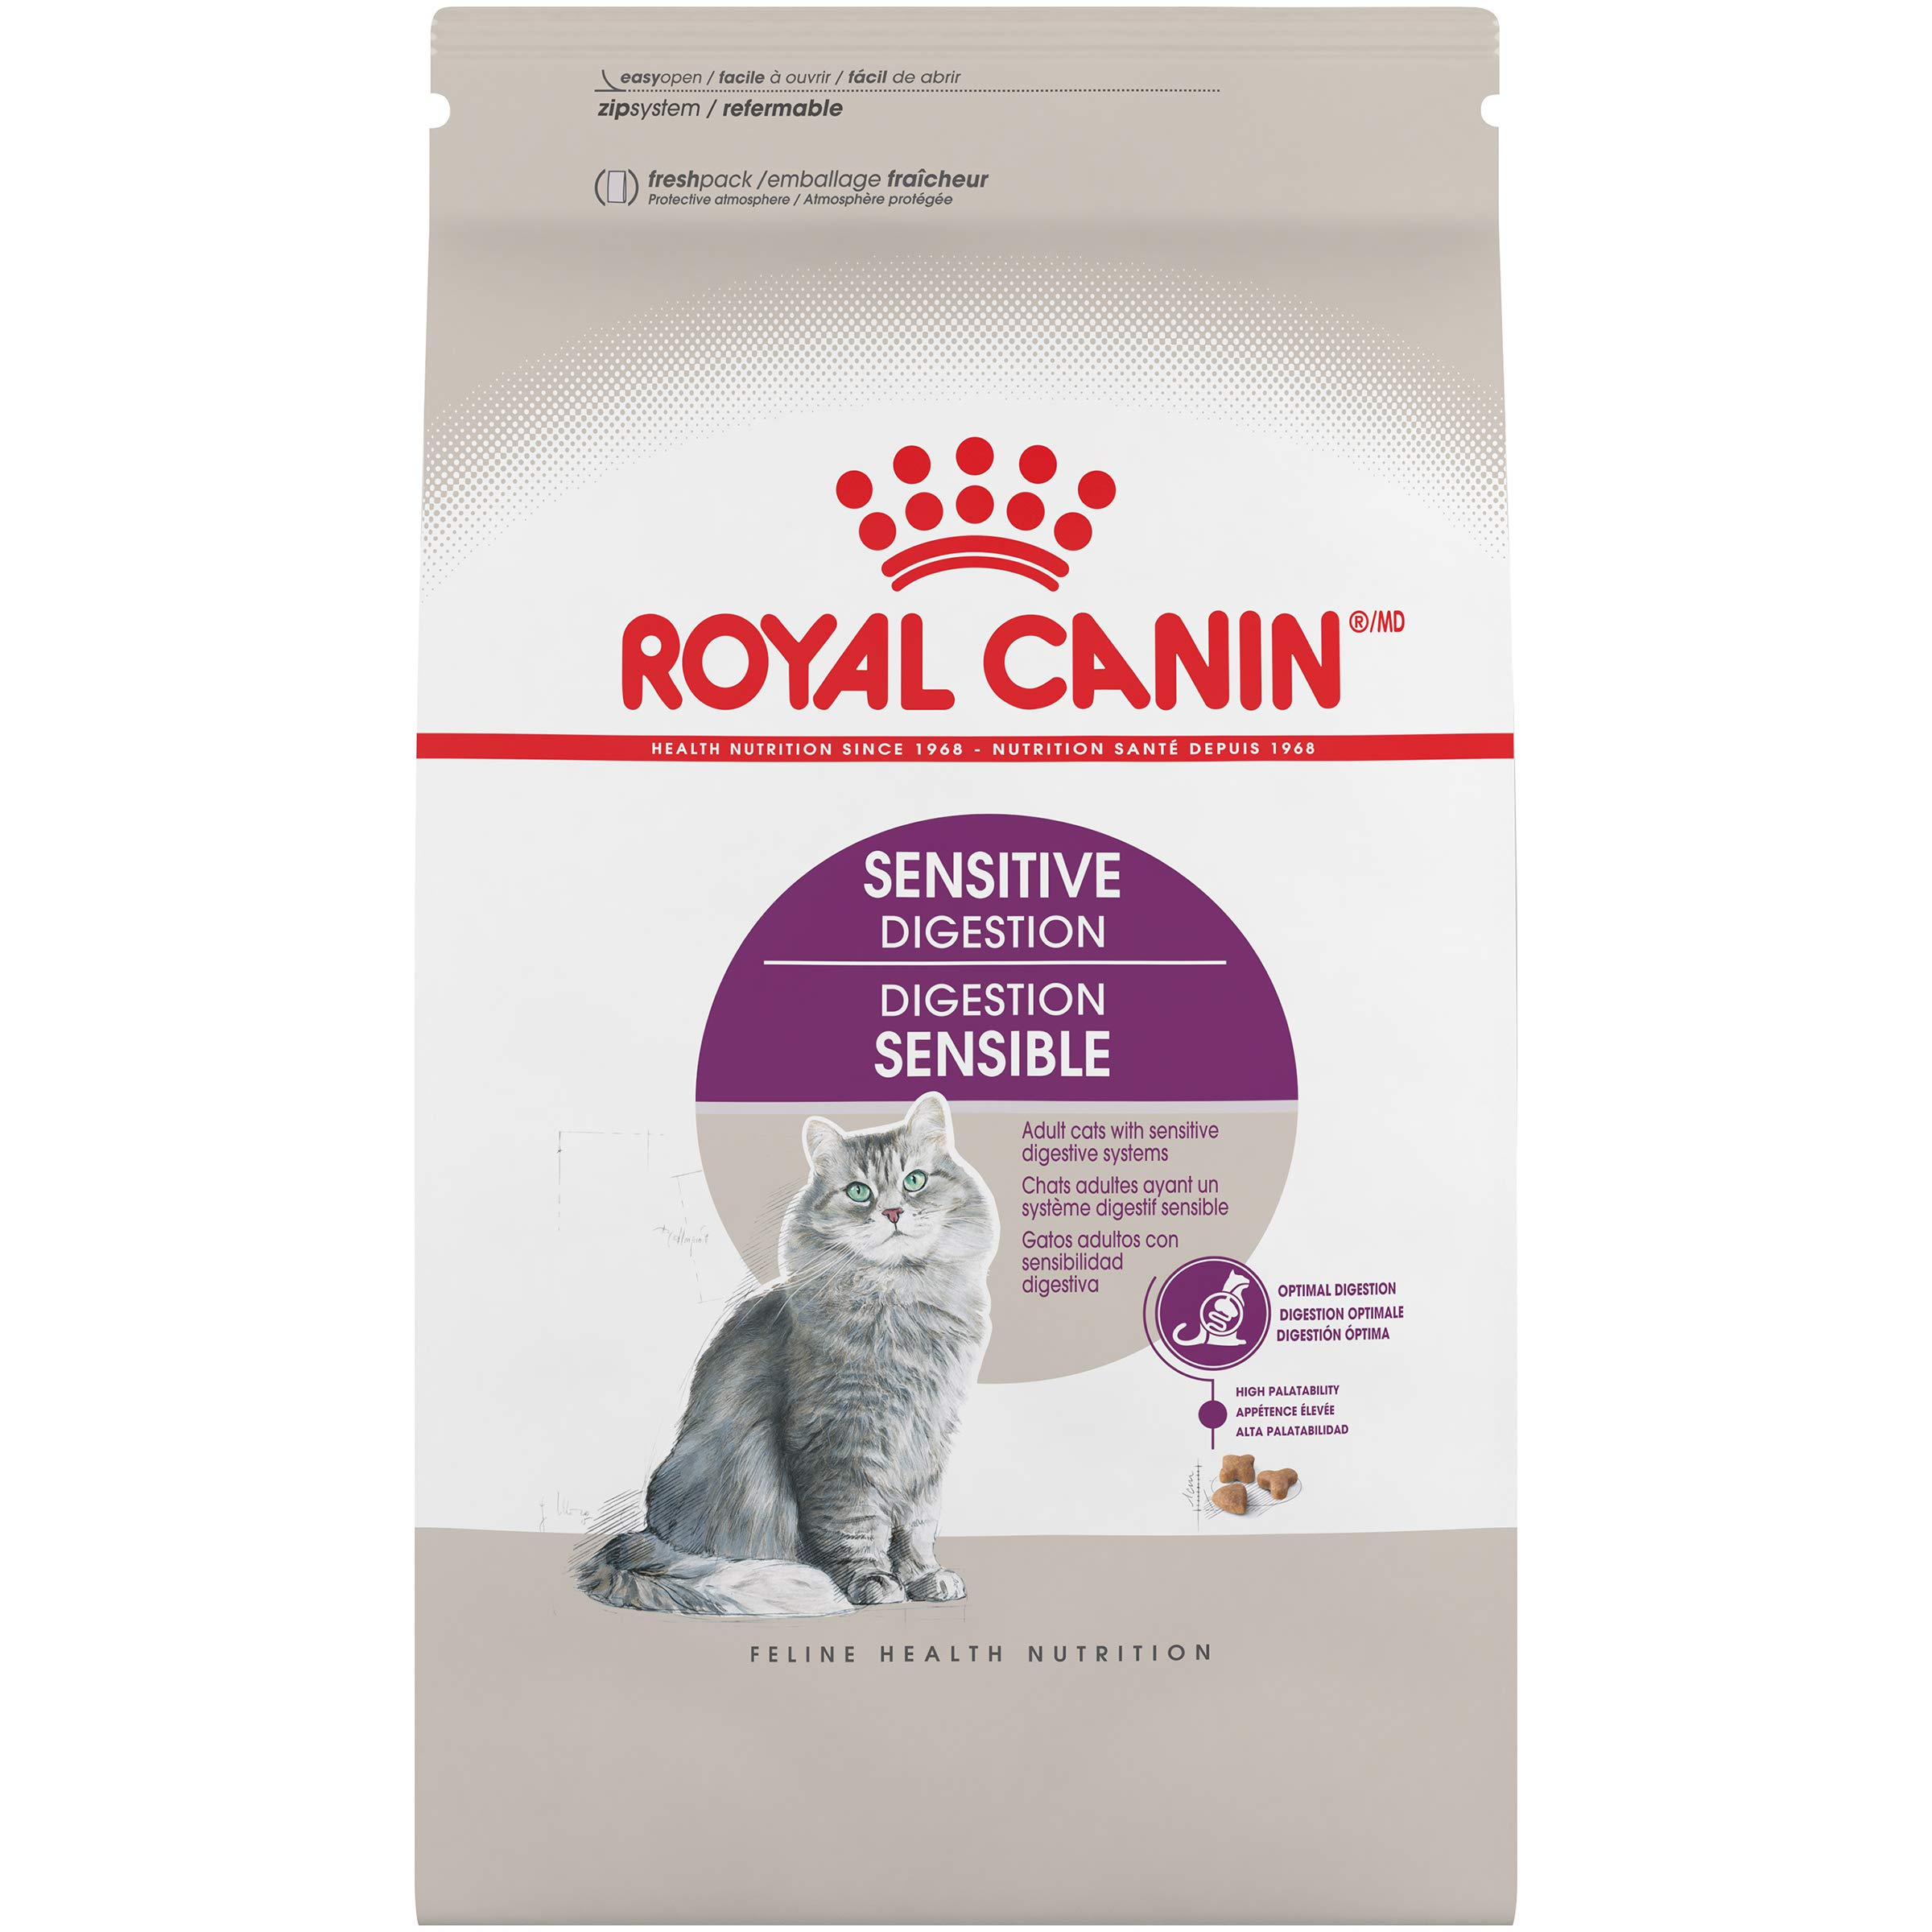 Royal Canin Adult Cat Sensitive Digestion Dry Adult Cat Food, 15 lb. bag by Royal Canin